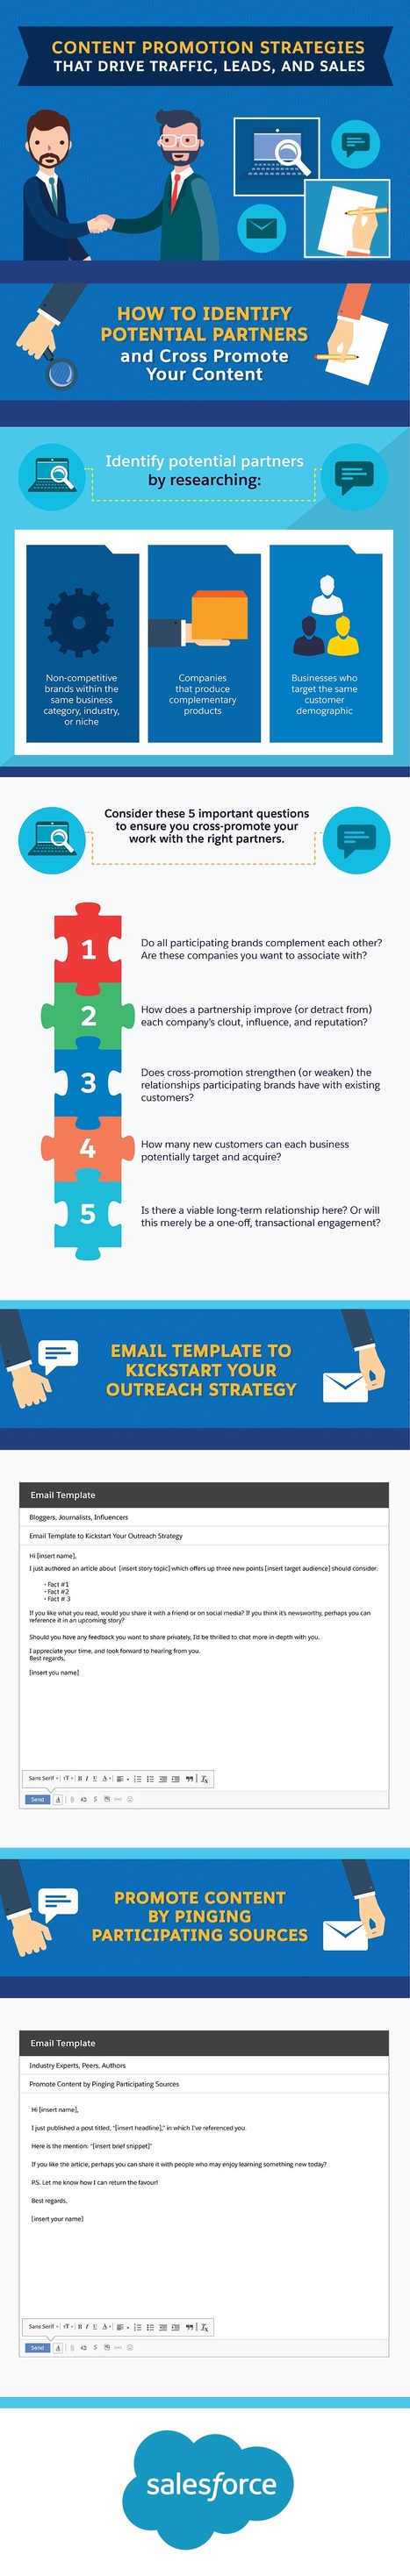 [Infographic] 7 Content Promotion Strategies That Drive Traffic, Leads, and Sales | My Blog 2016 | Scoop.it